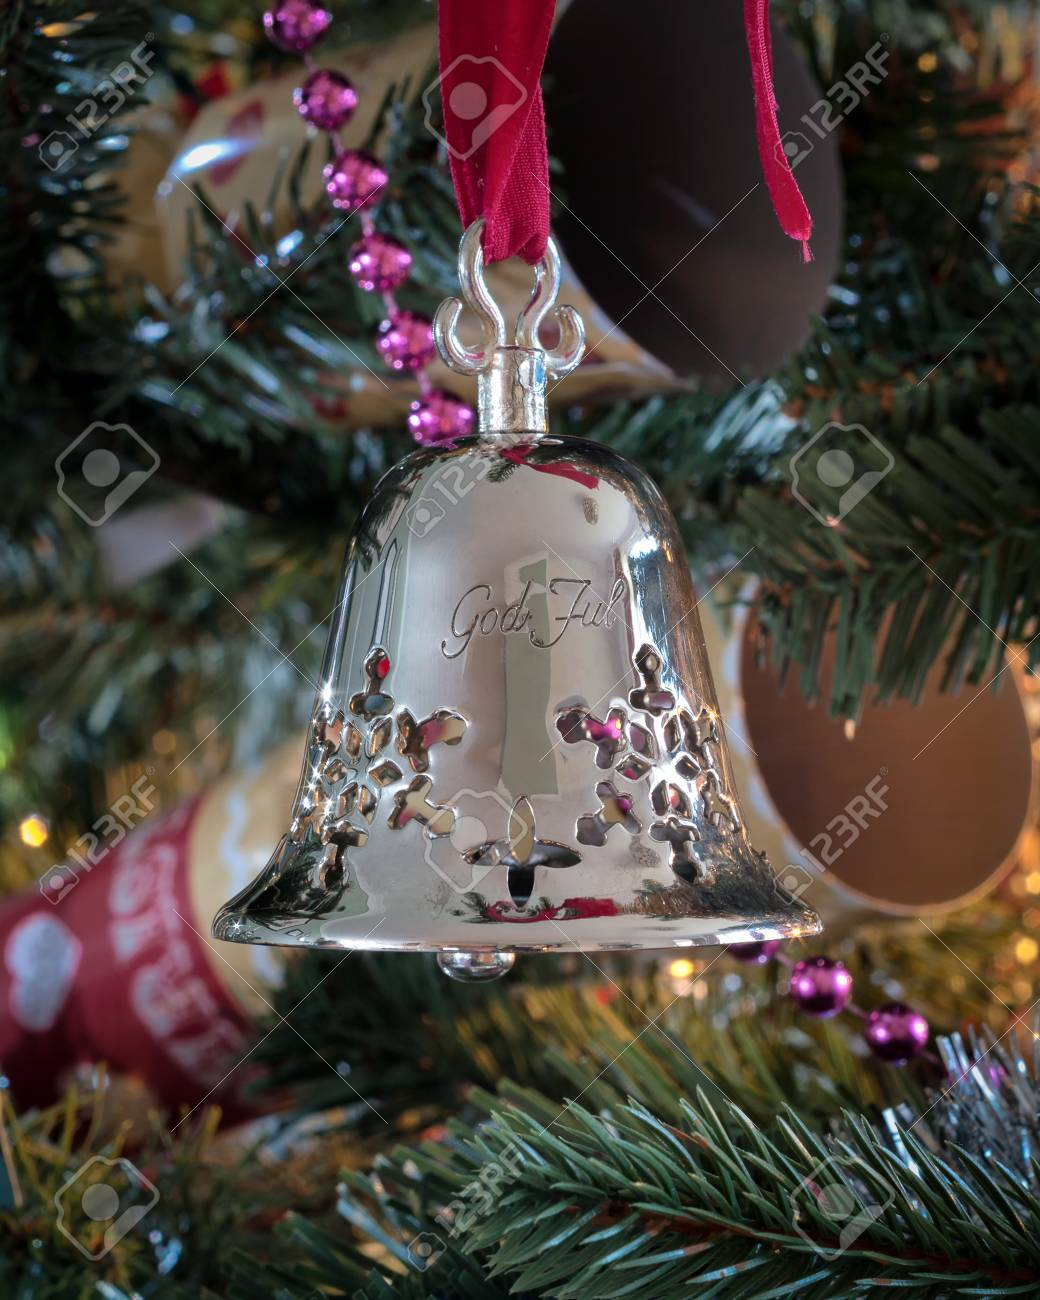 Tradition Christmas Decorations Silver Bell From Norway